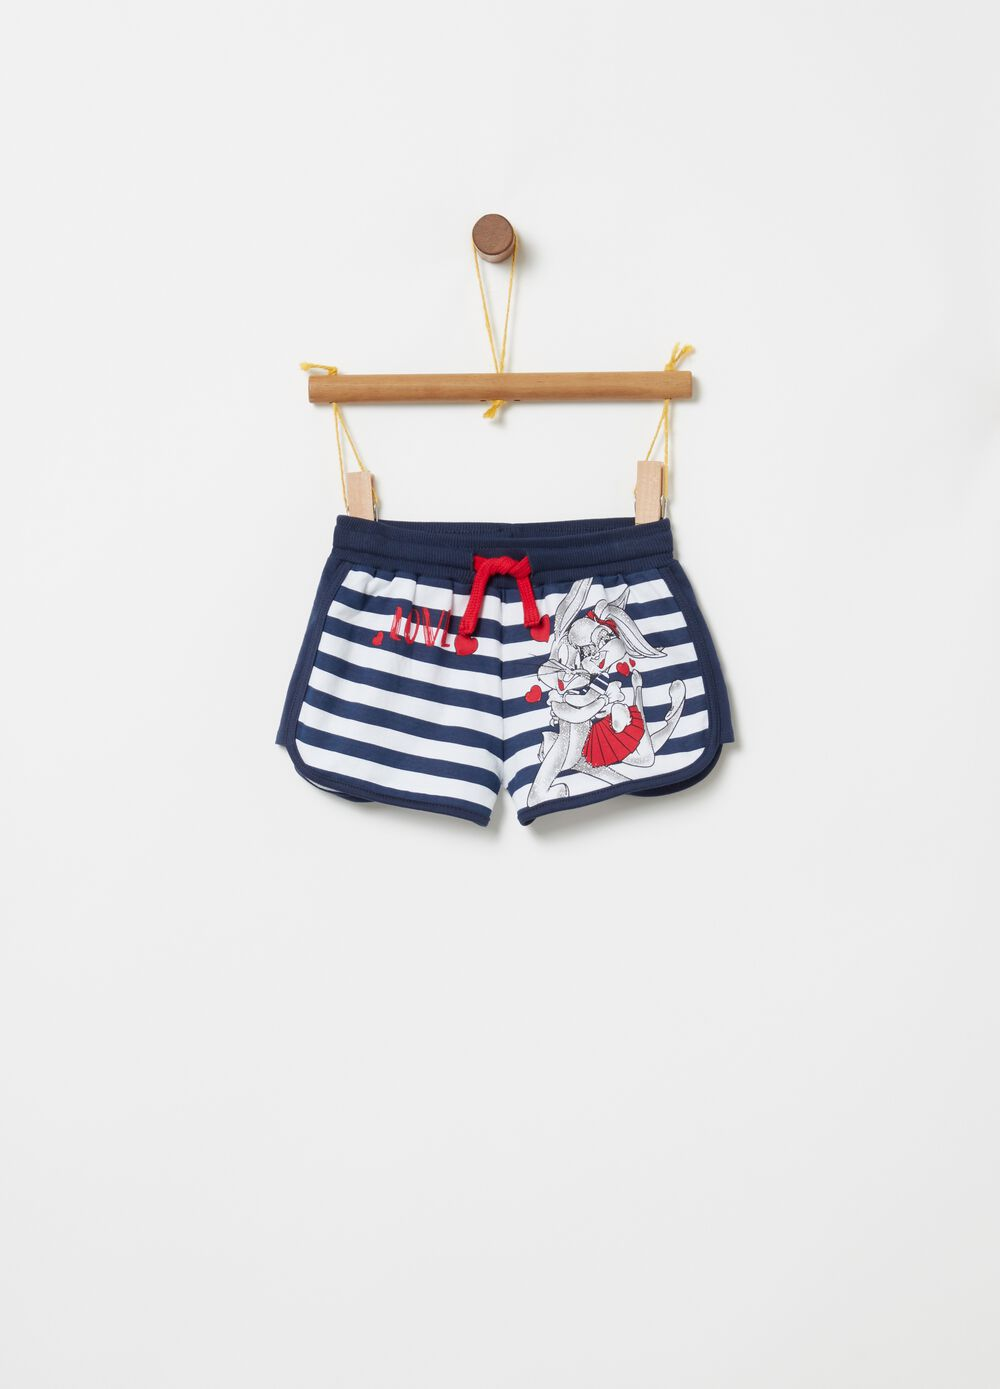 Shorts with Bugs Bunny print and striped pattern